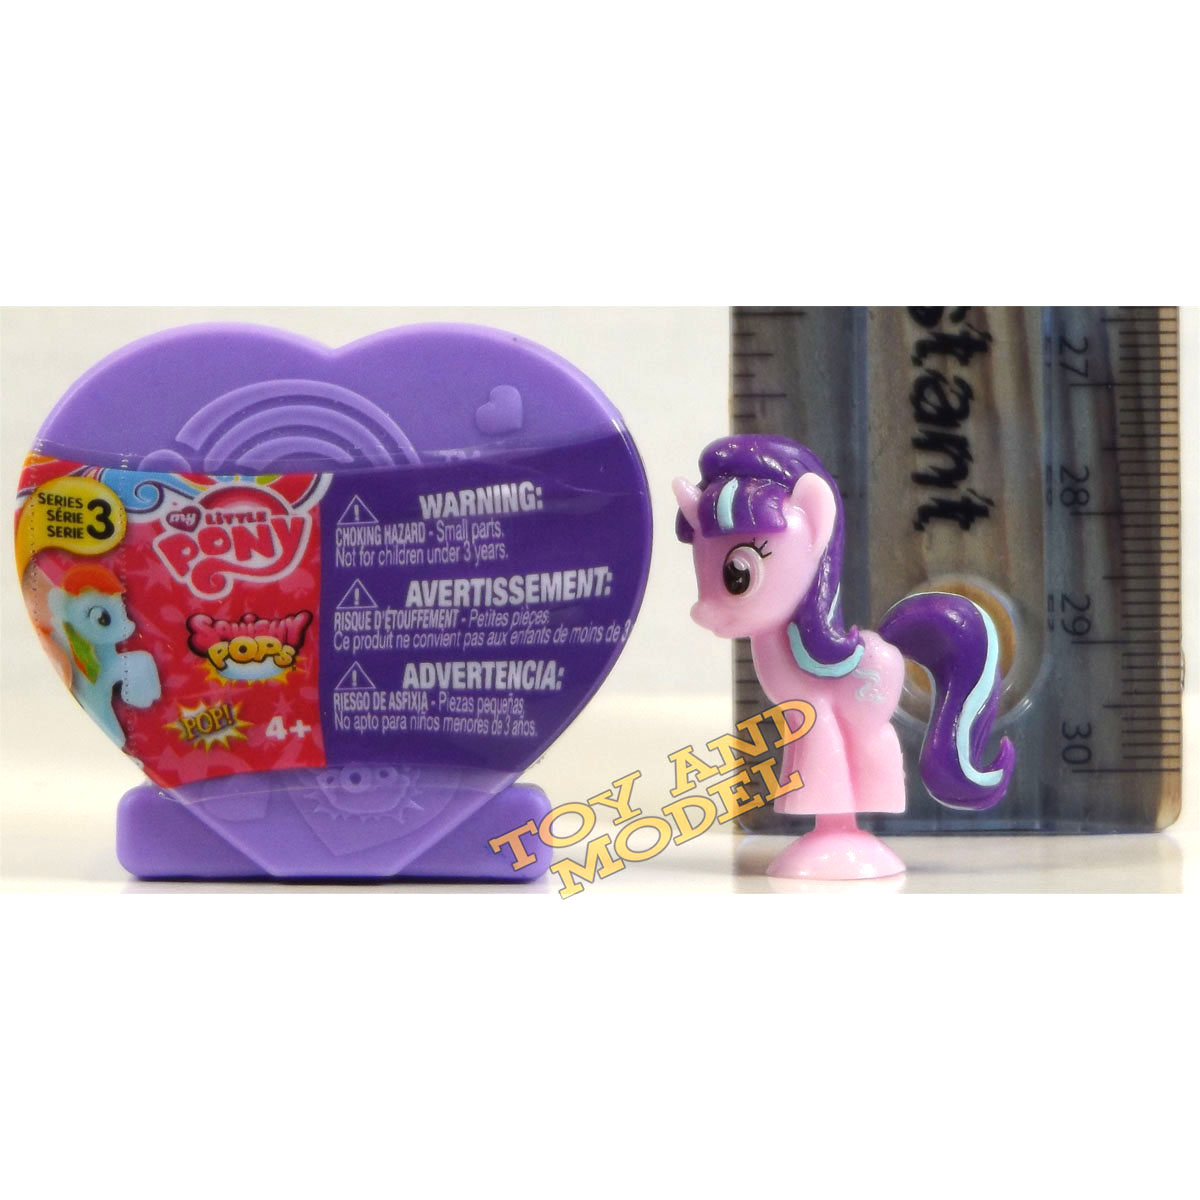 Toys R Us My Little Pony Squishy Pops : 5 Pack of My Little Pony Squishy Pops Heart Case Series 3 - Fast Dispatch 4Yrs+   ?12.99 ...